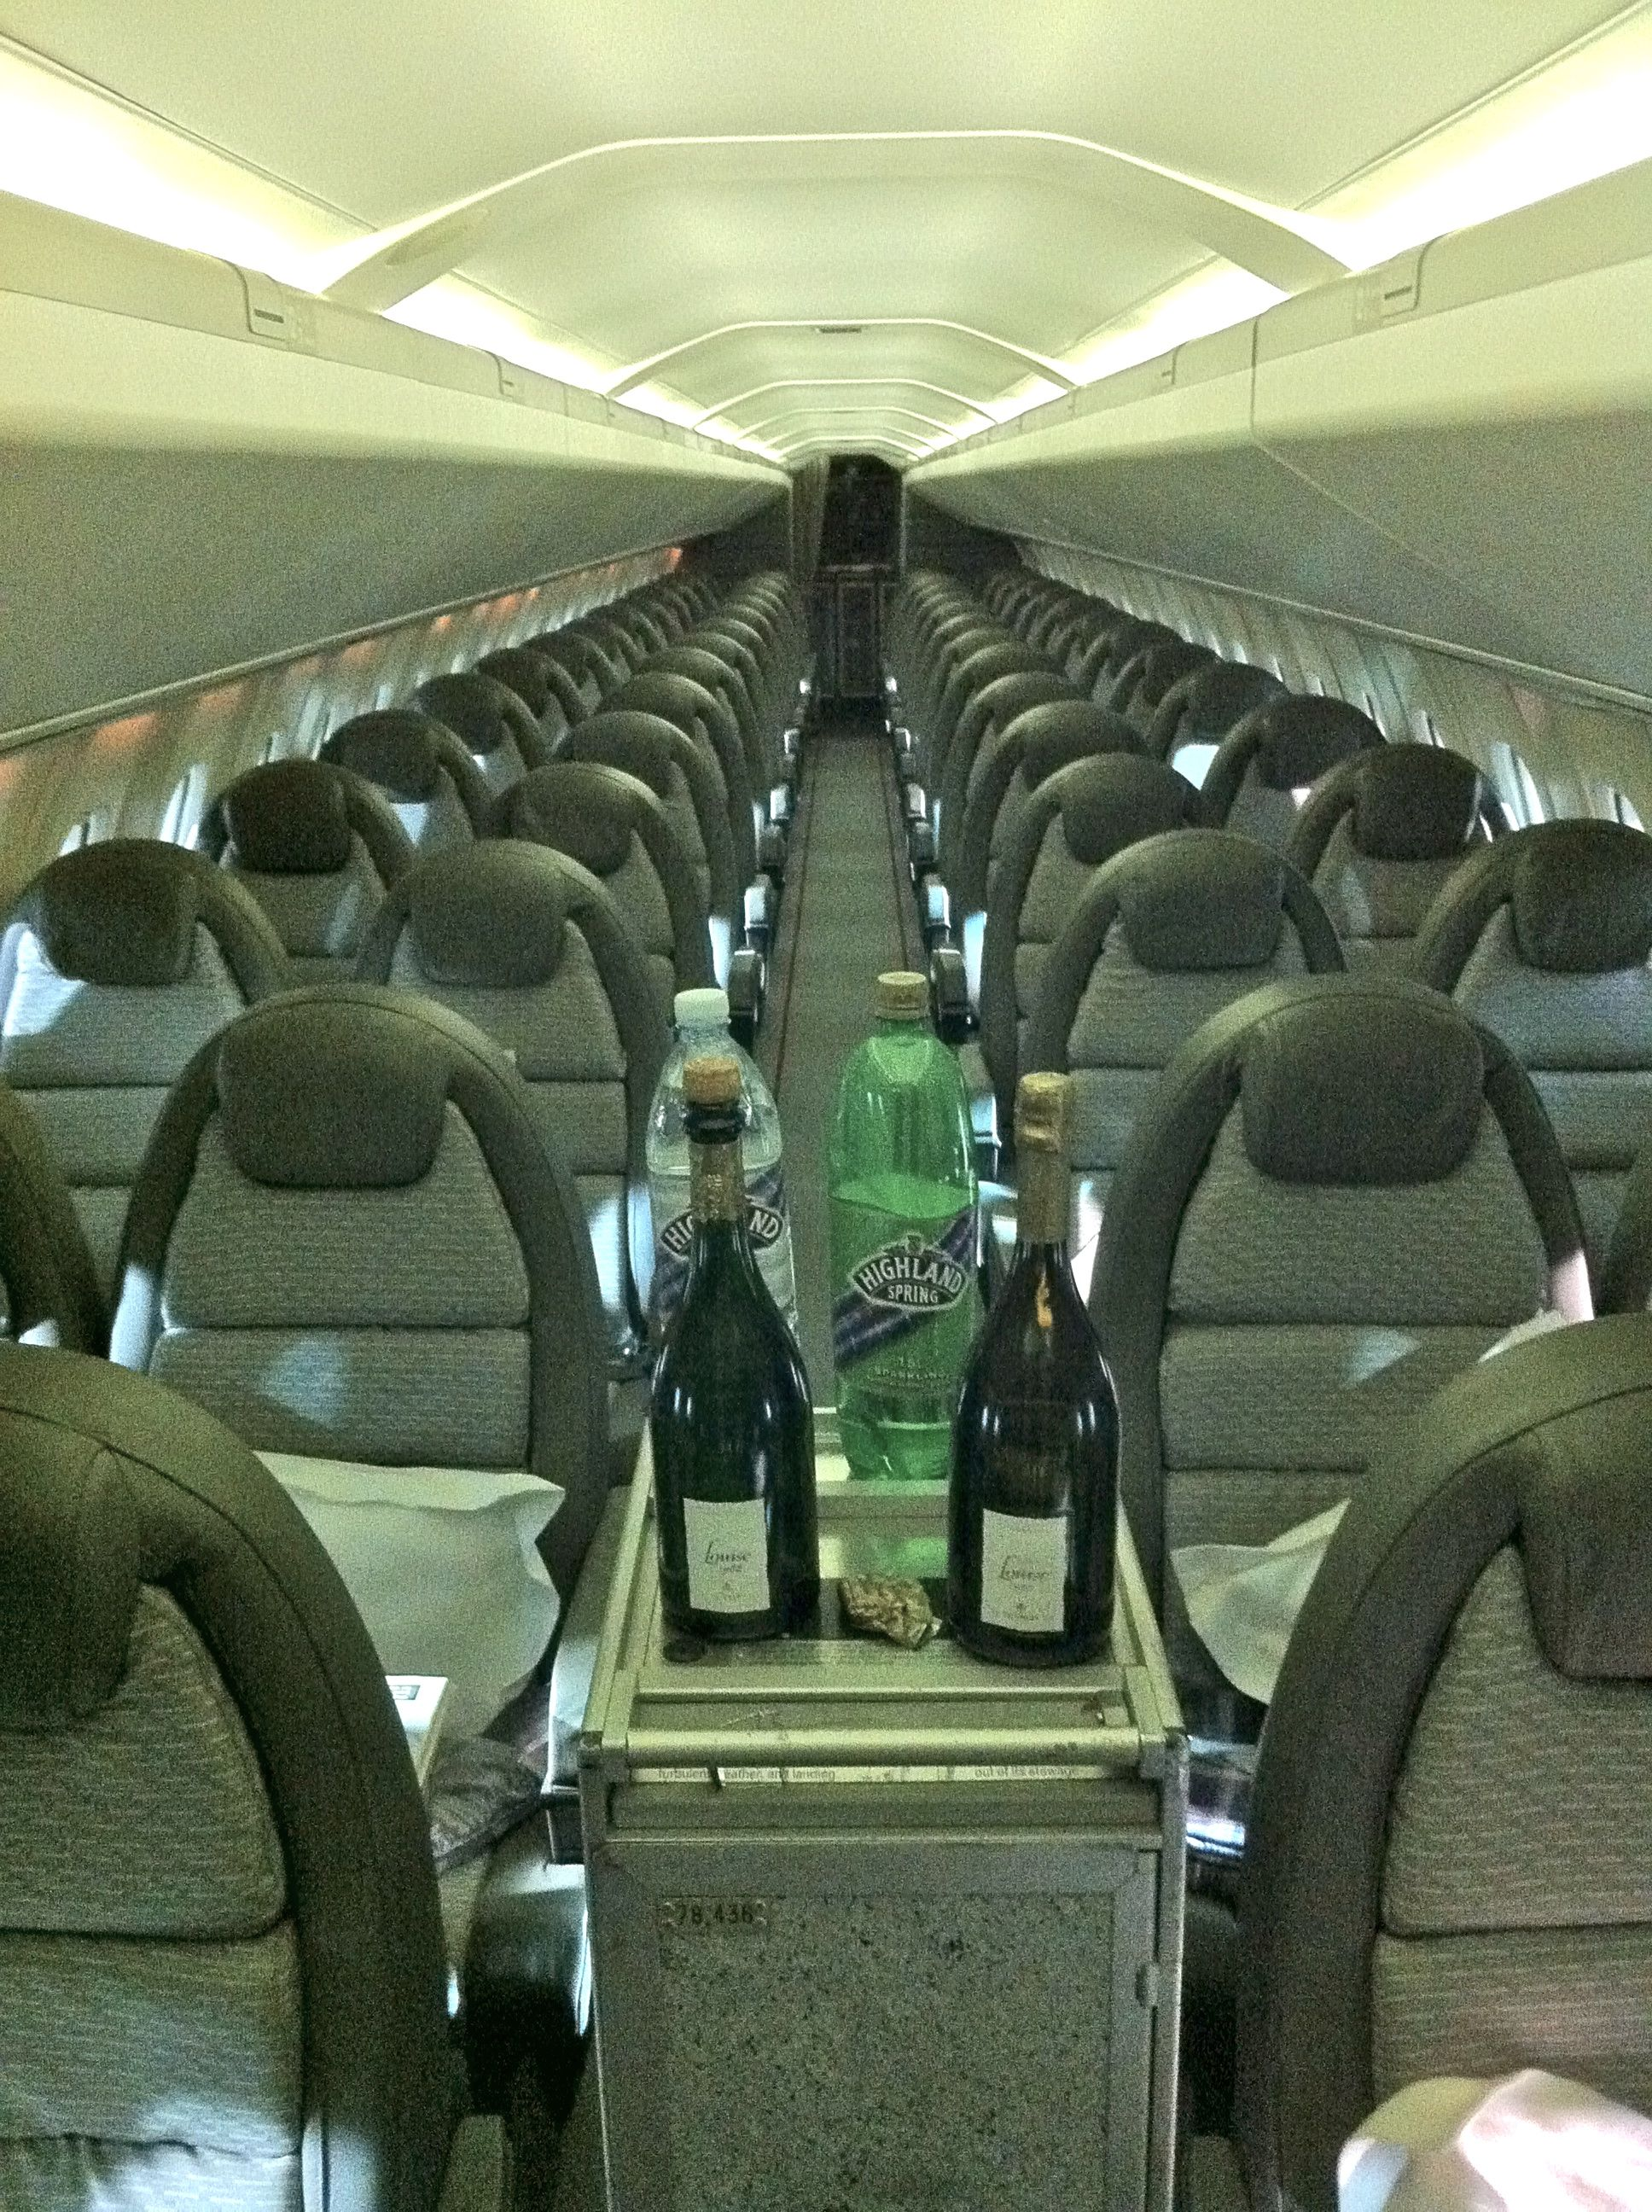 Captivating Concorde Interior Designed By Sir Terence Conran